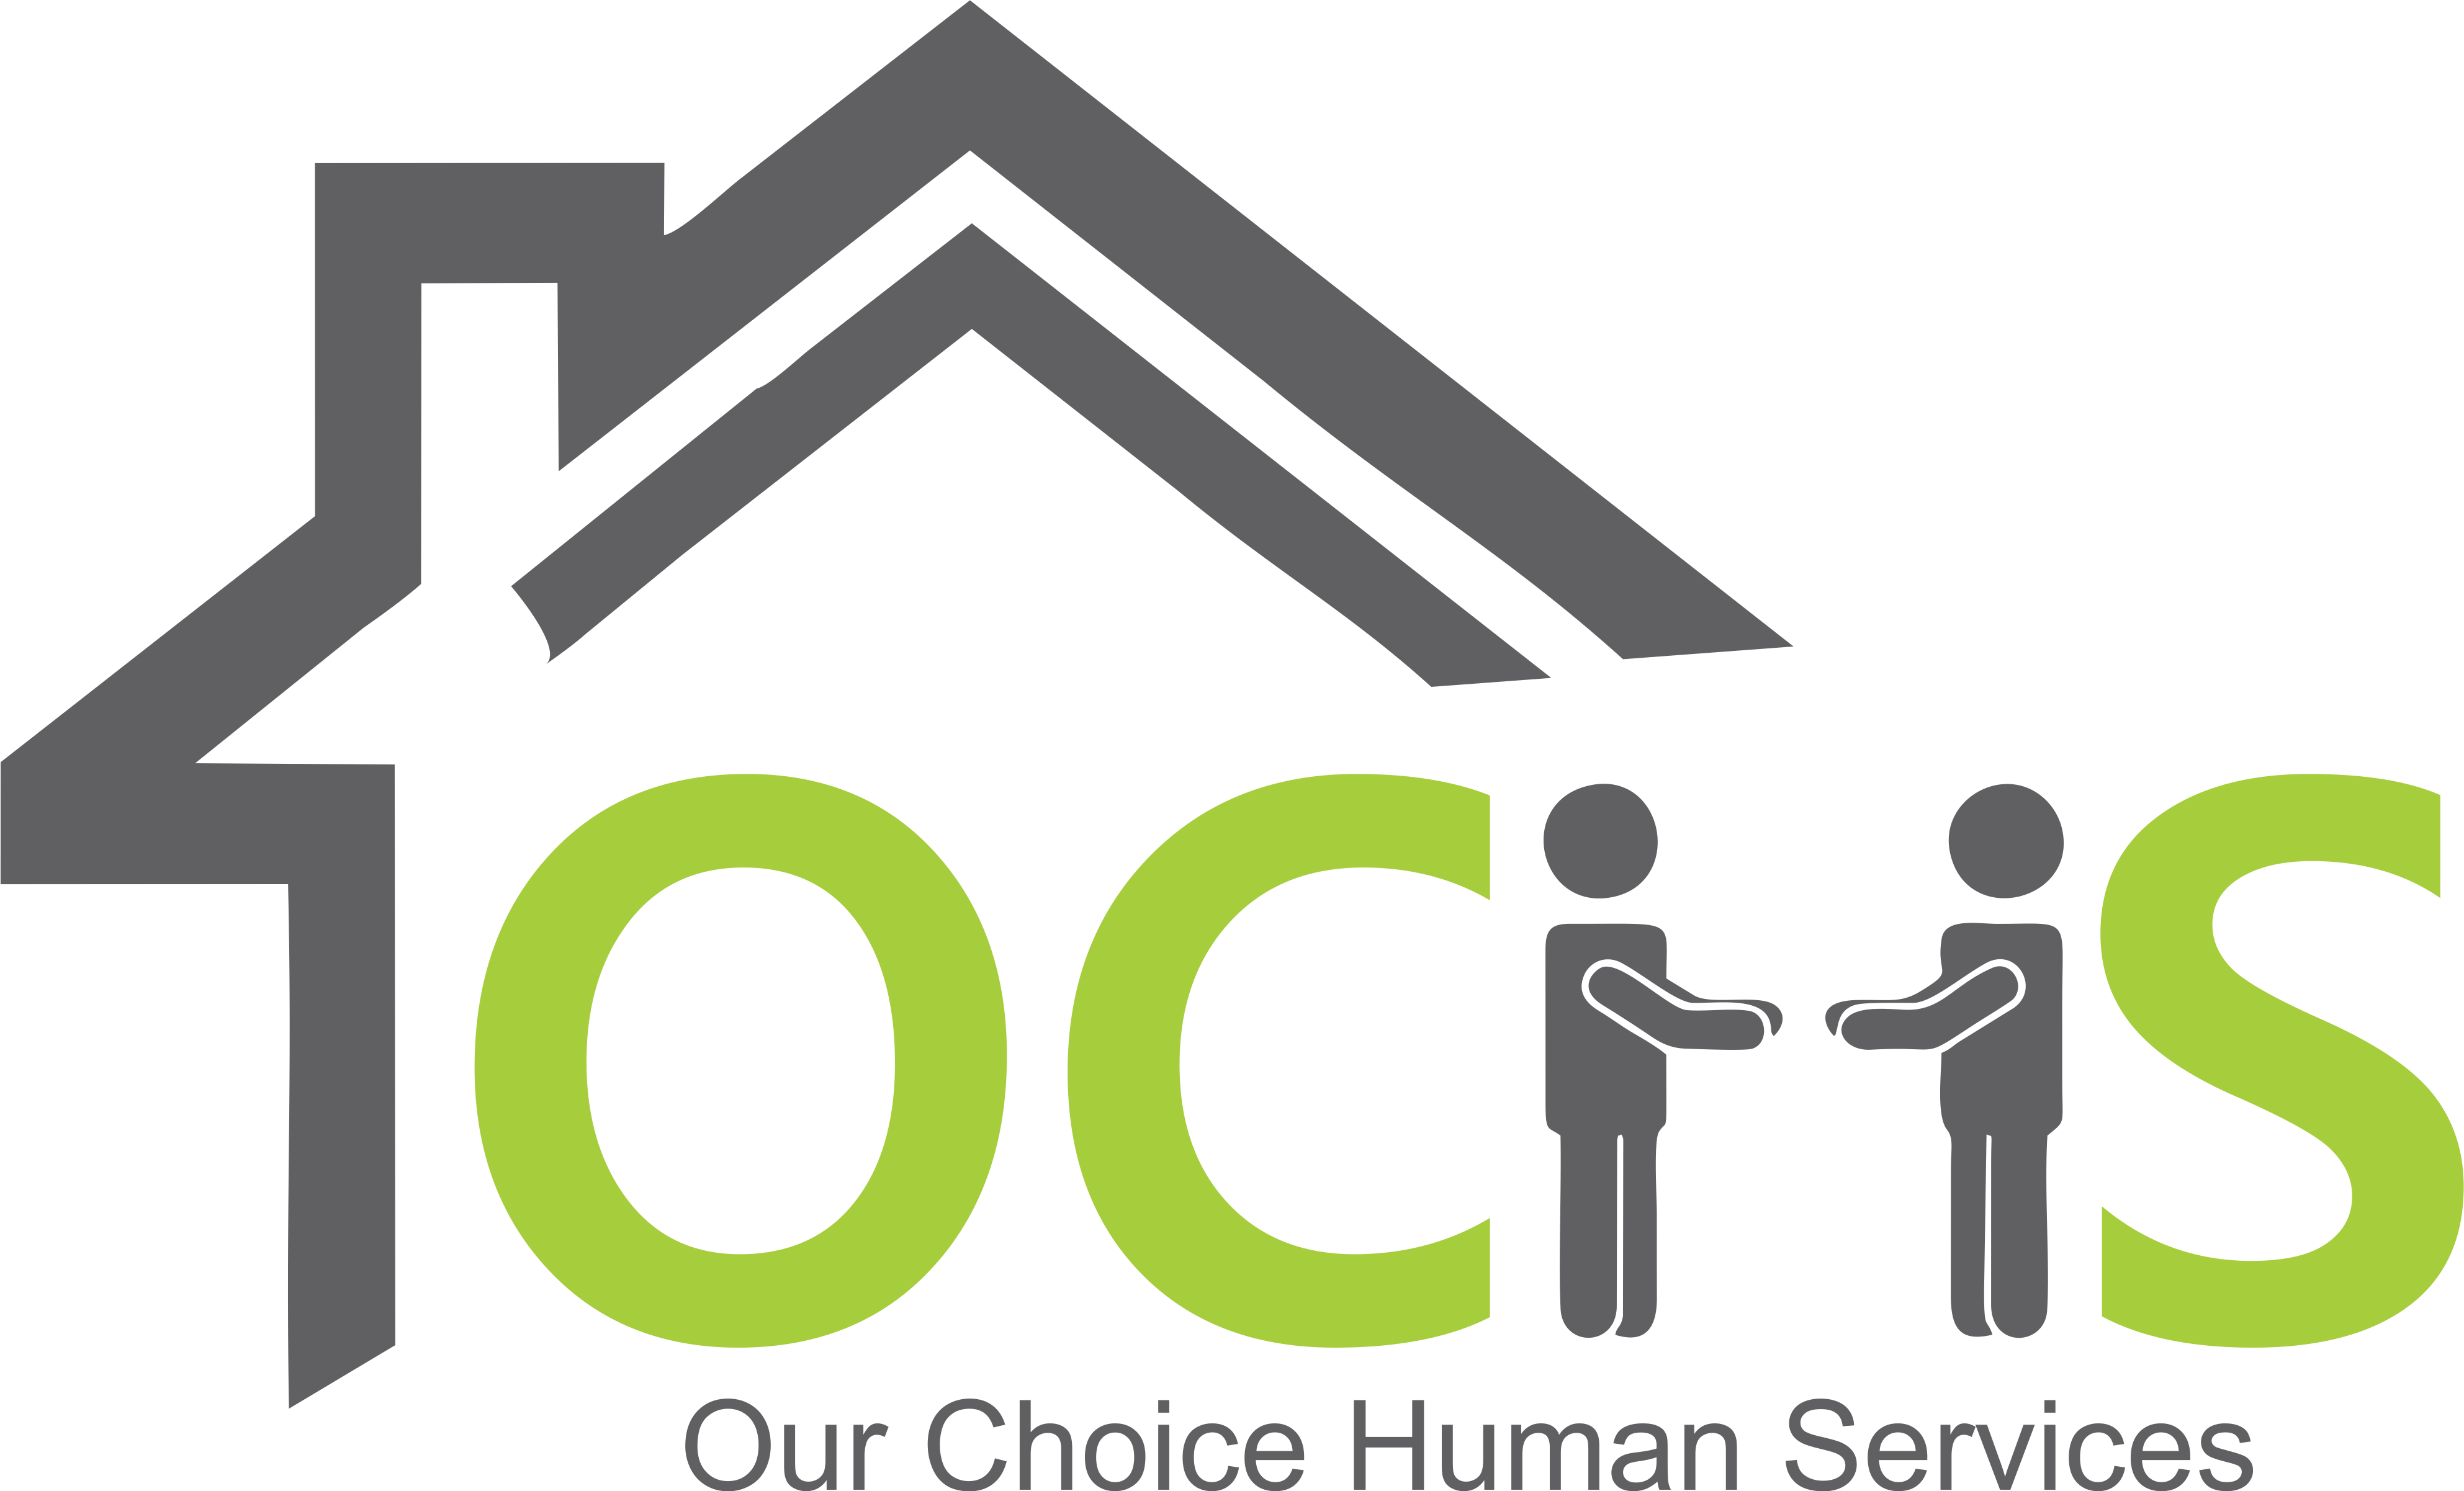 Our Choice Human Services